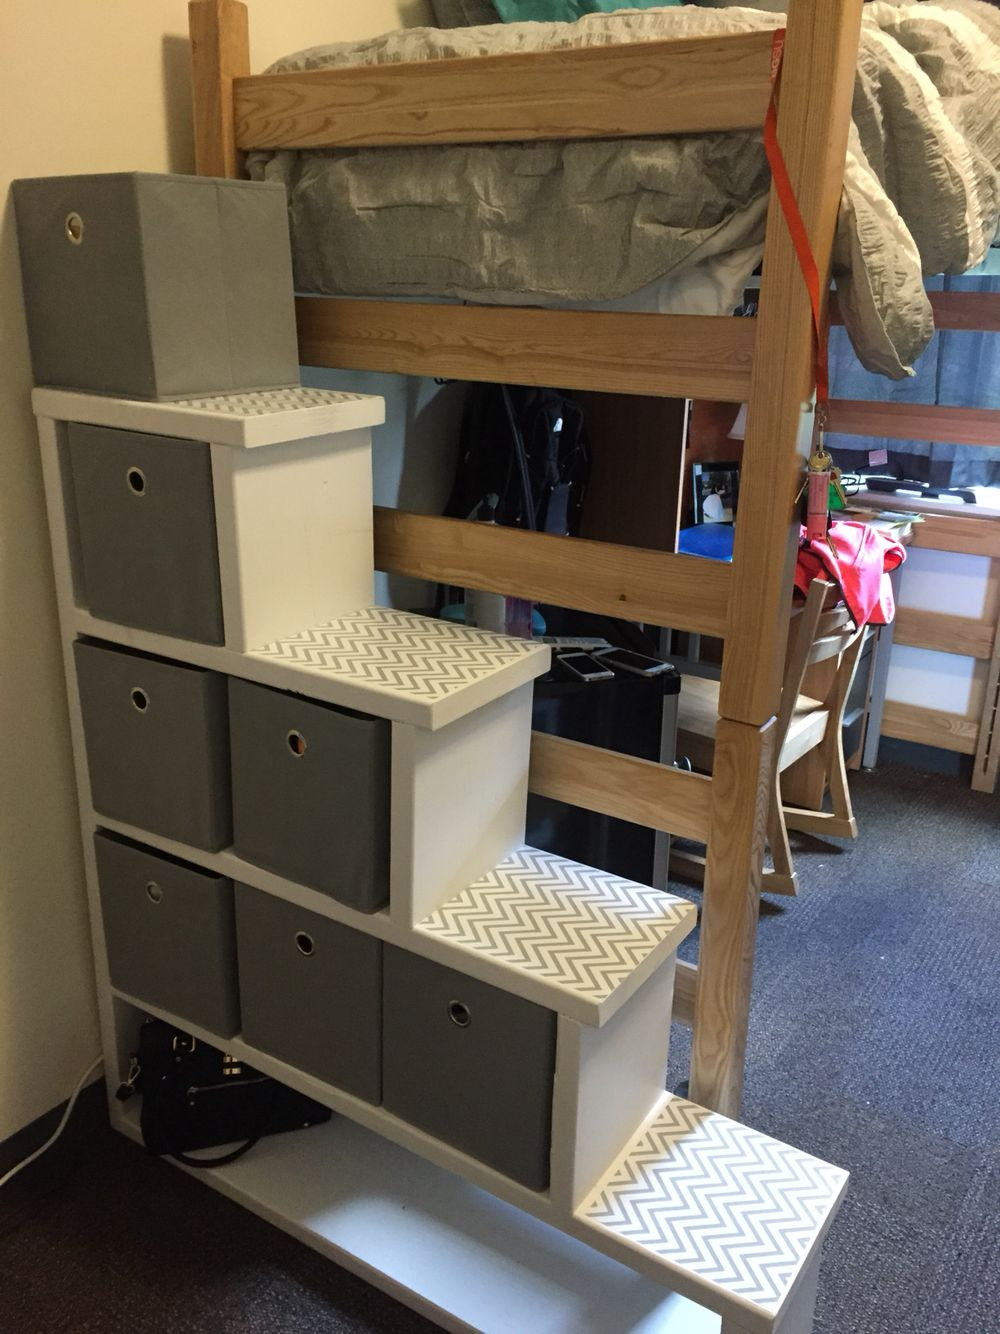 Dorm Room Furniture Layout - Find this pin and more on my dorm room bgsu